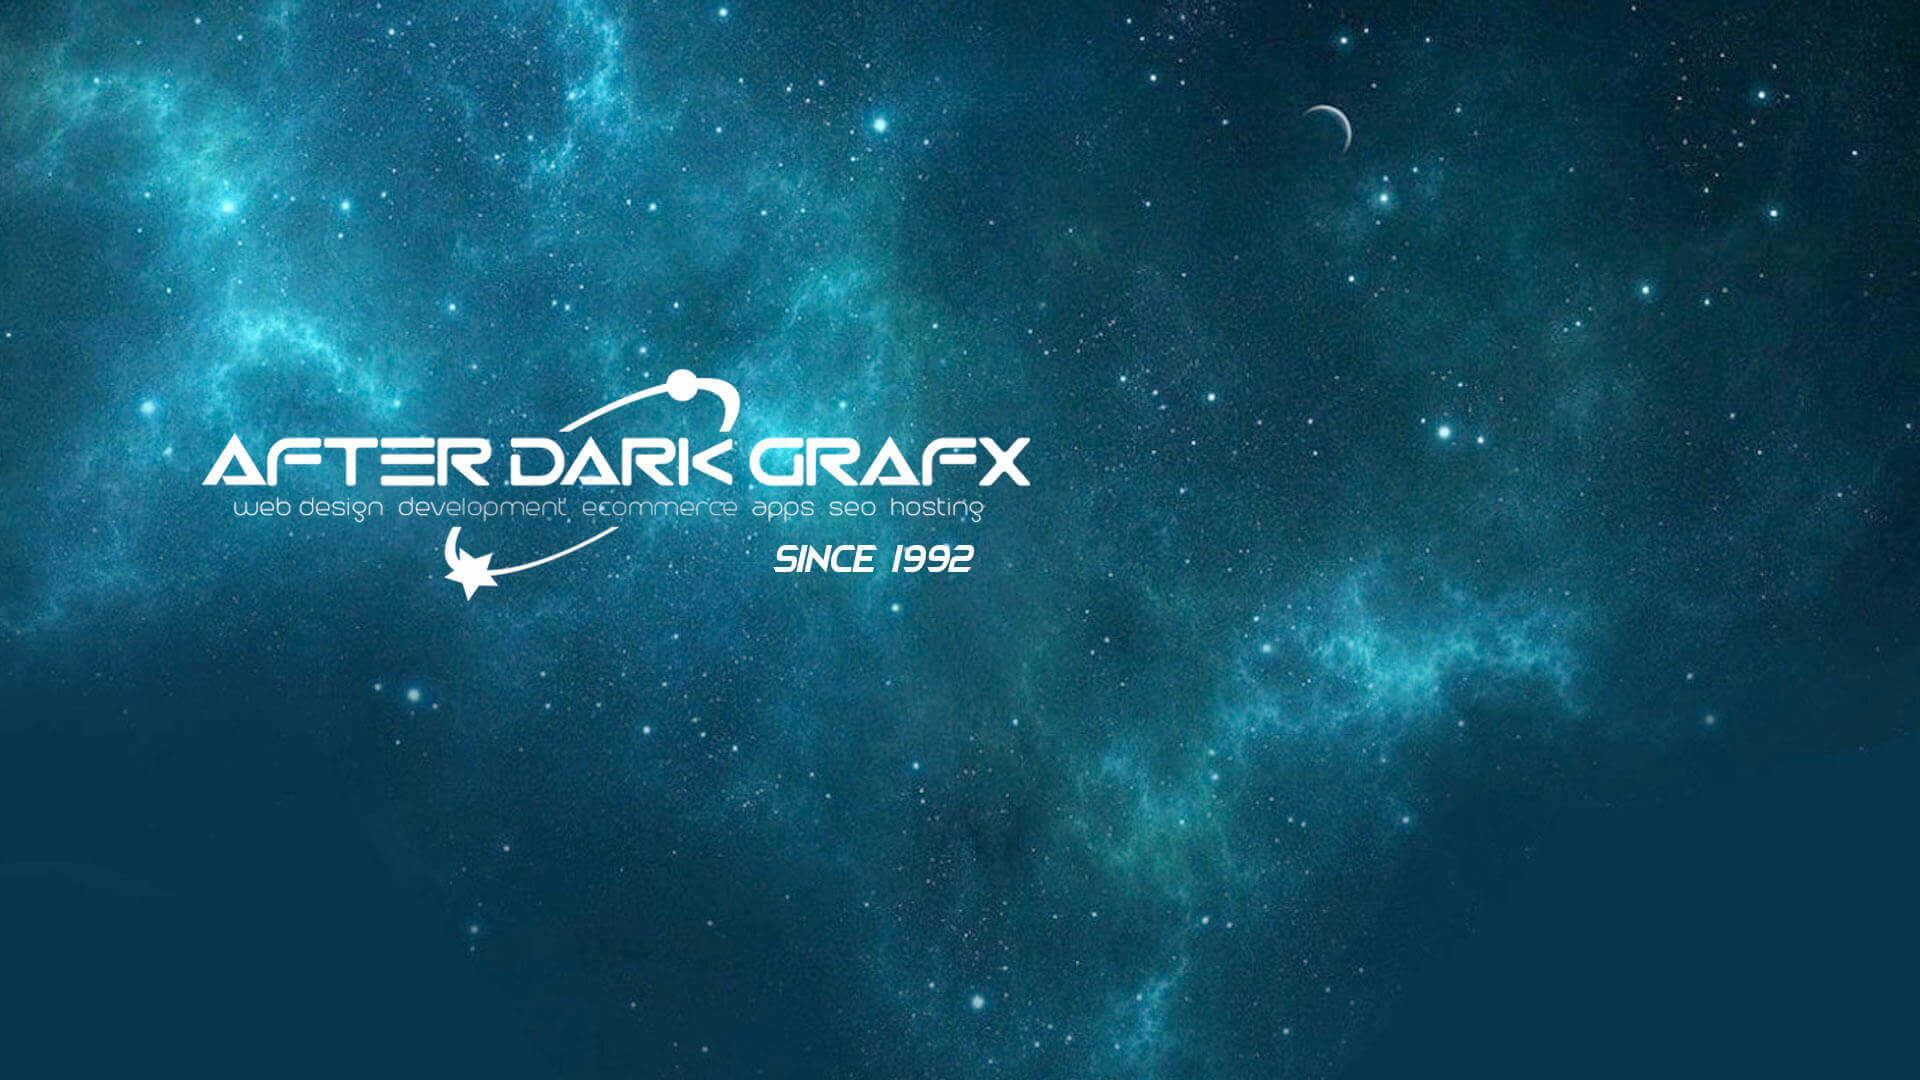 Affordable Web Design - After Dark Grafx